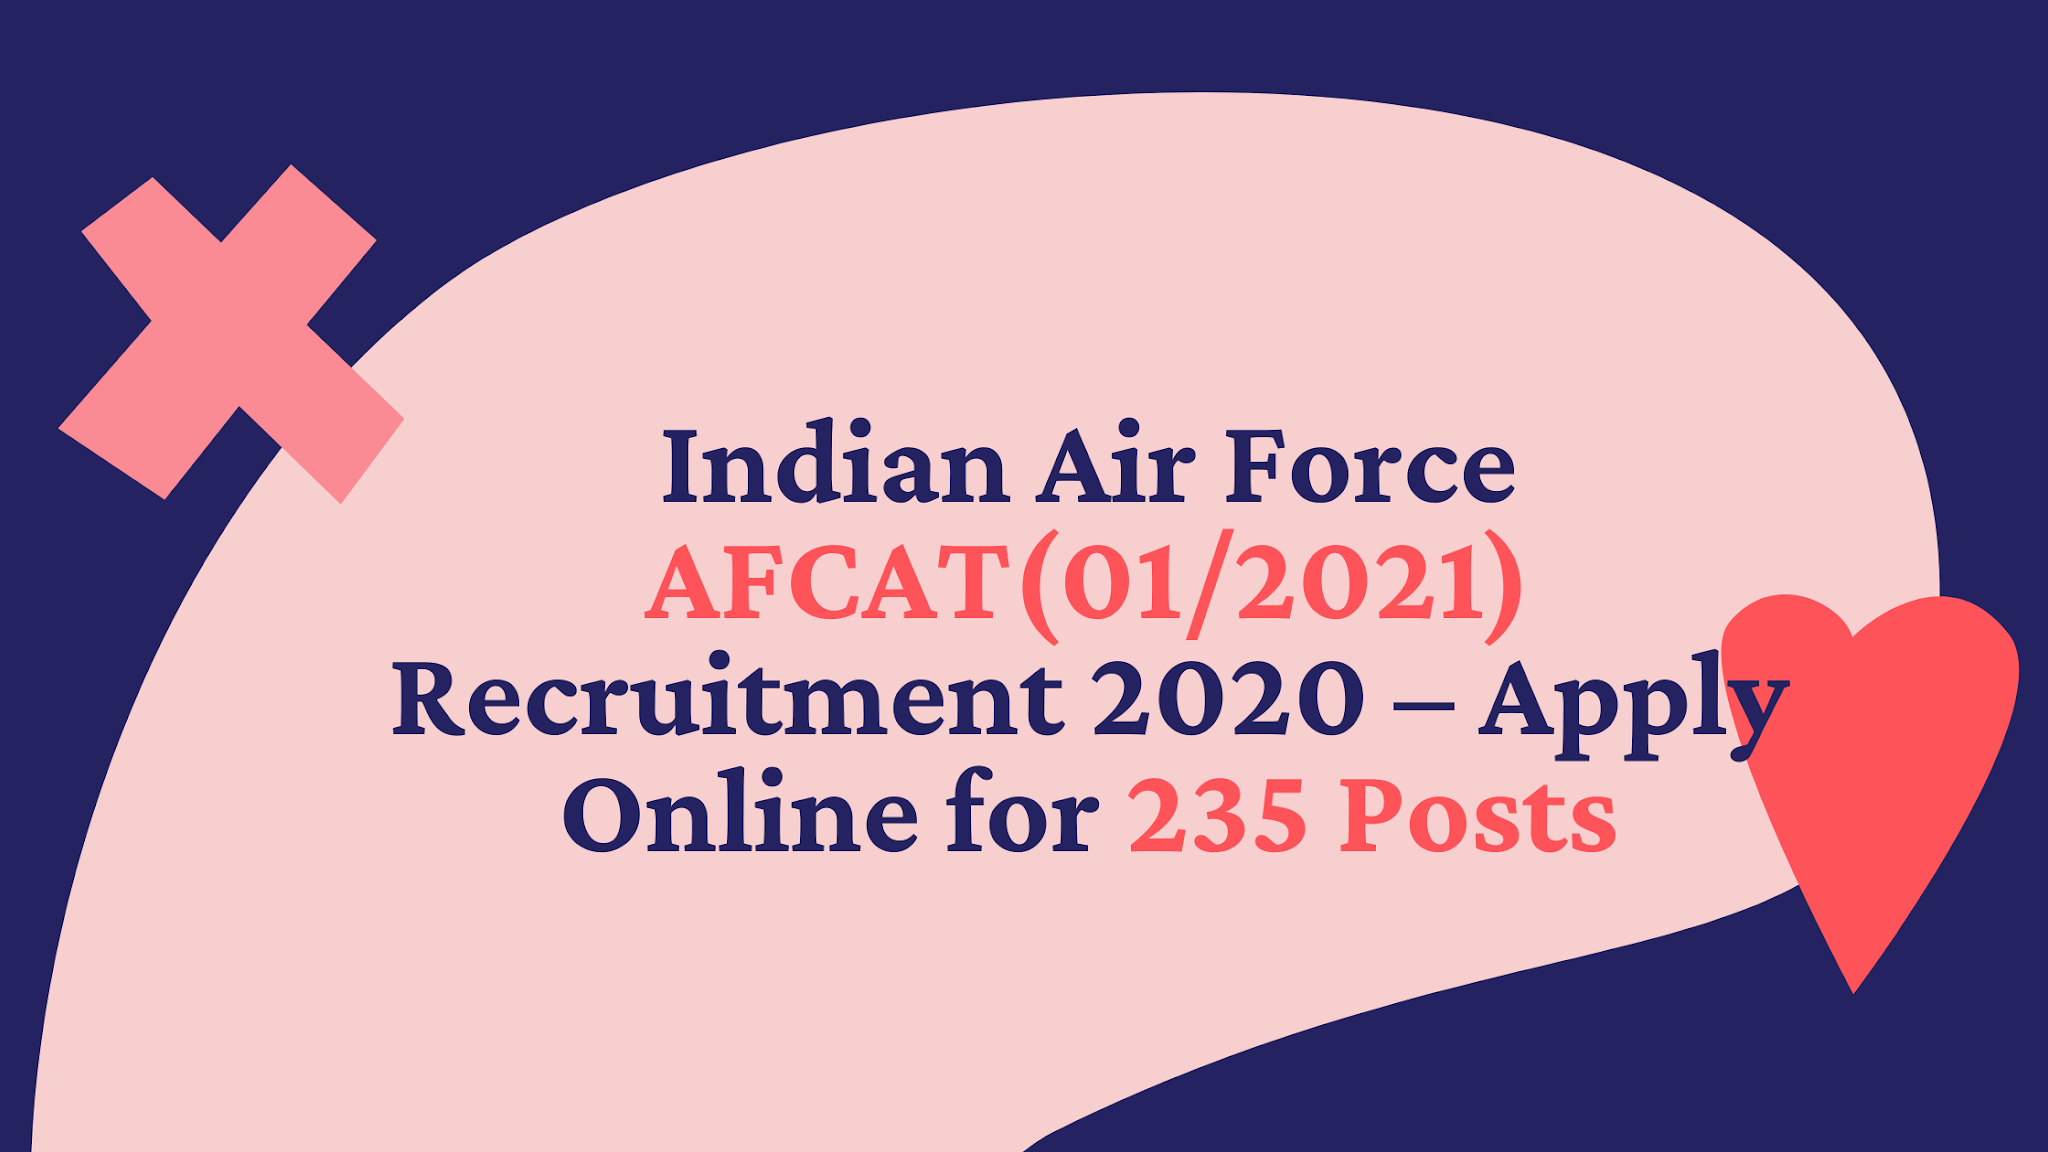 Indian Air Force AFCAT(01/2021) Recruitment 2020 – Apply Online for 235 Posts